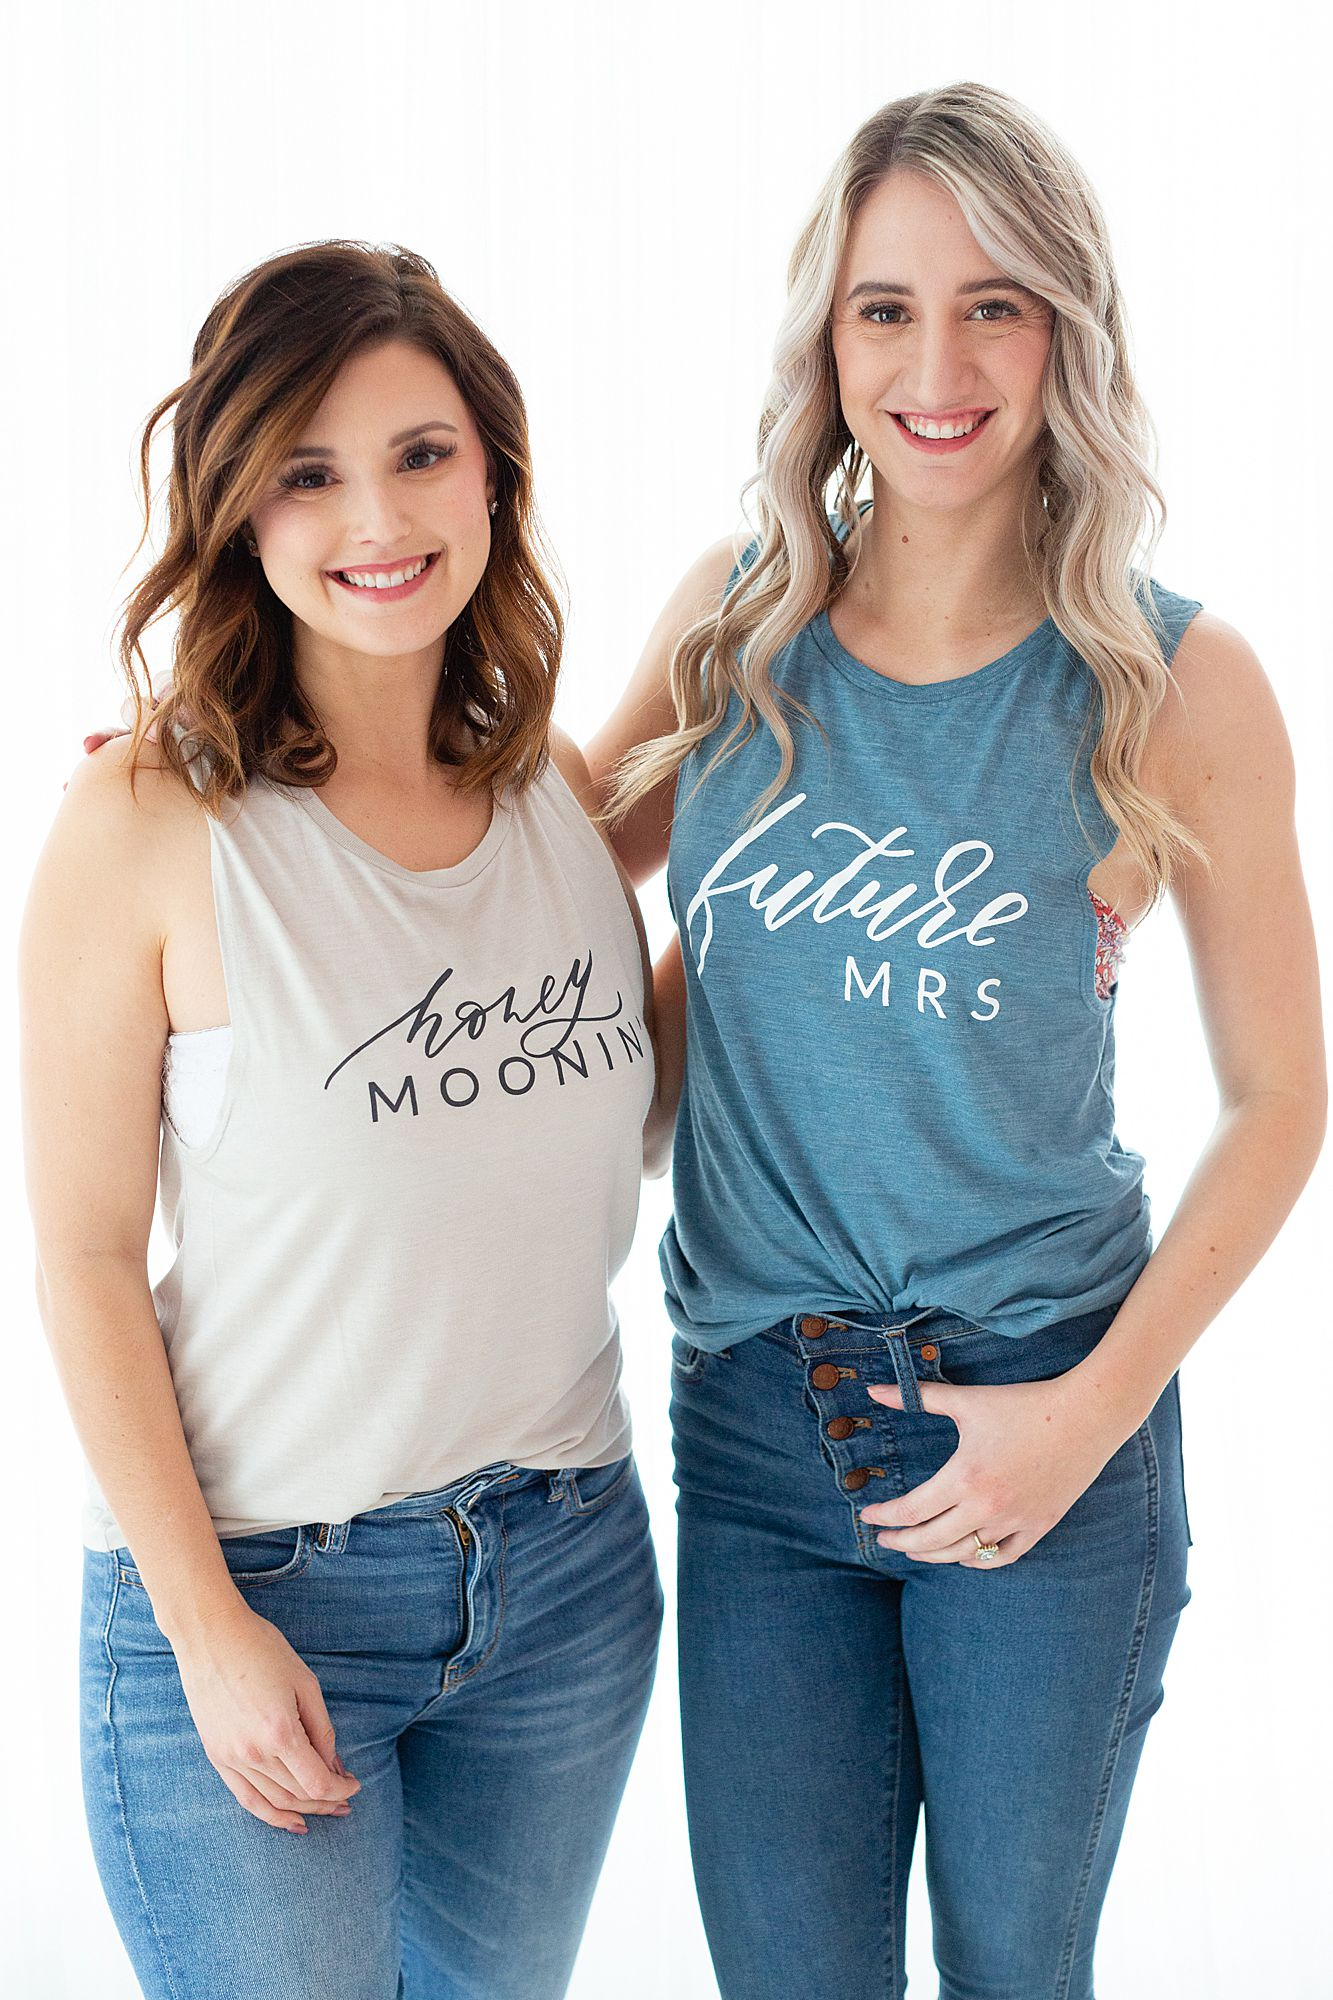 The Baum Shop - Launch Celebration - Ashley Baumgartner Etsy Shop - Bride Tank Tops and Wifey Mug - Bridal Etsy Shop_0027.jpg